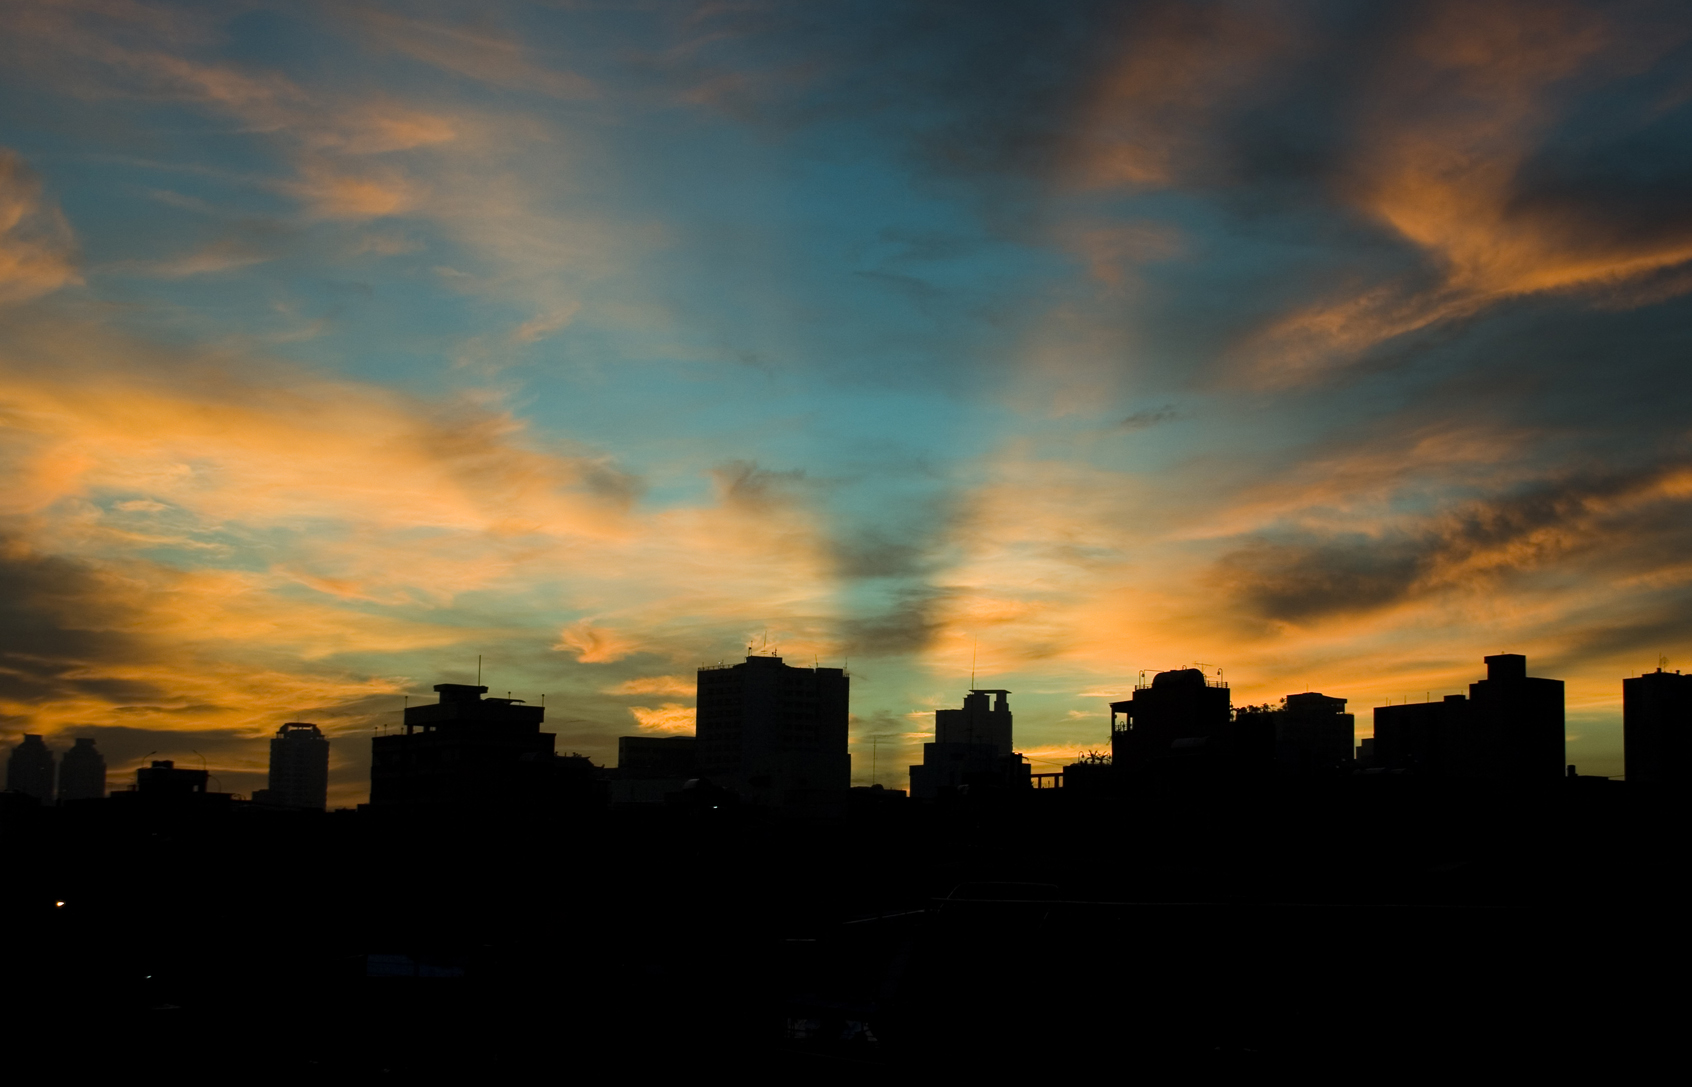 manila sunrise 2 by howlingtothemoon You can comment with funny, naughty, sexy fantasy lines but please do not ...